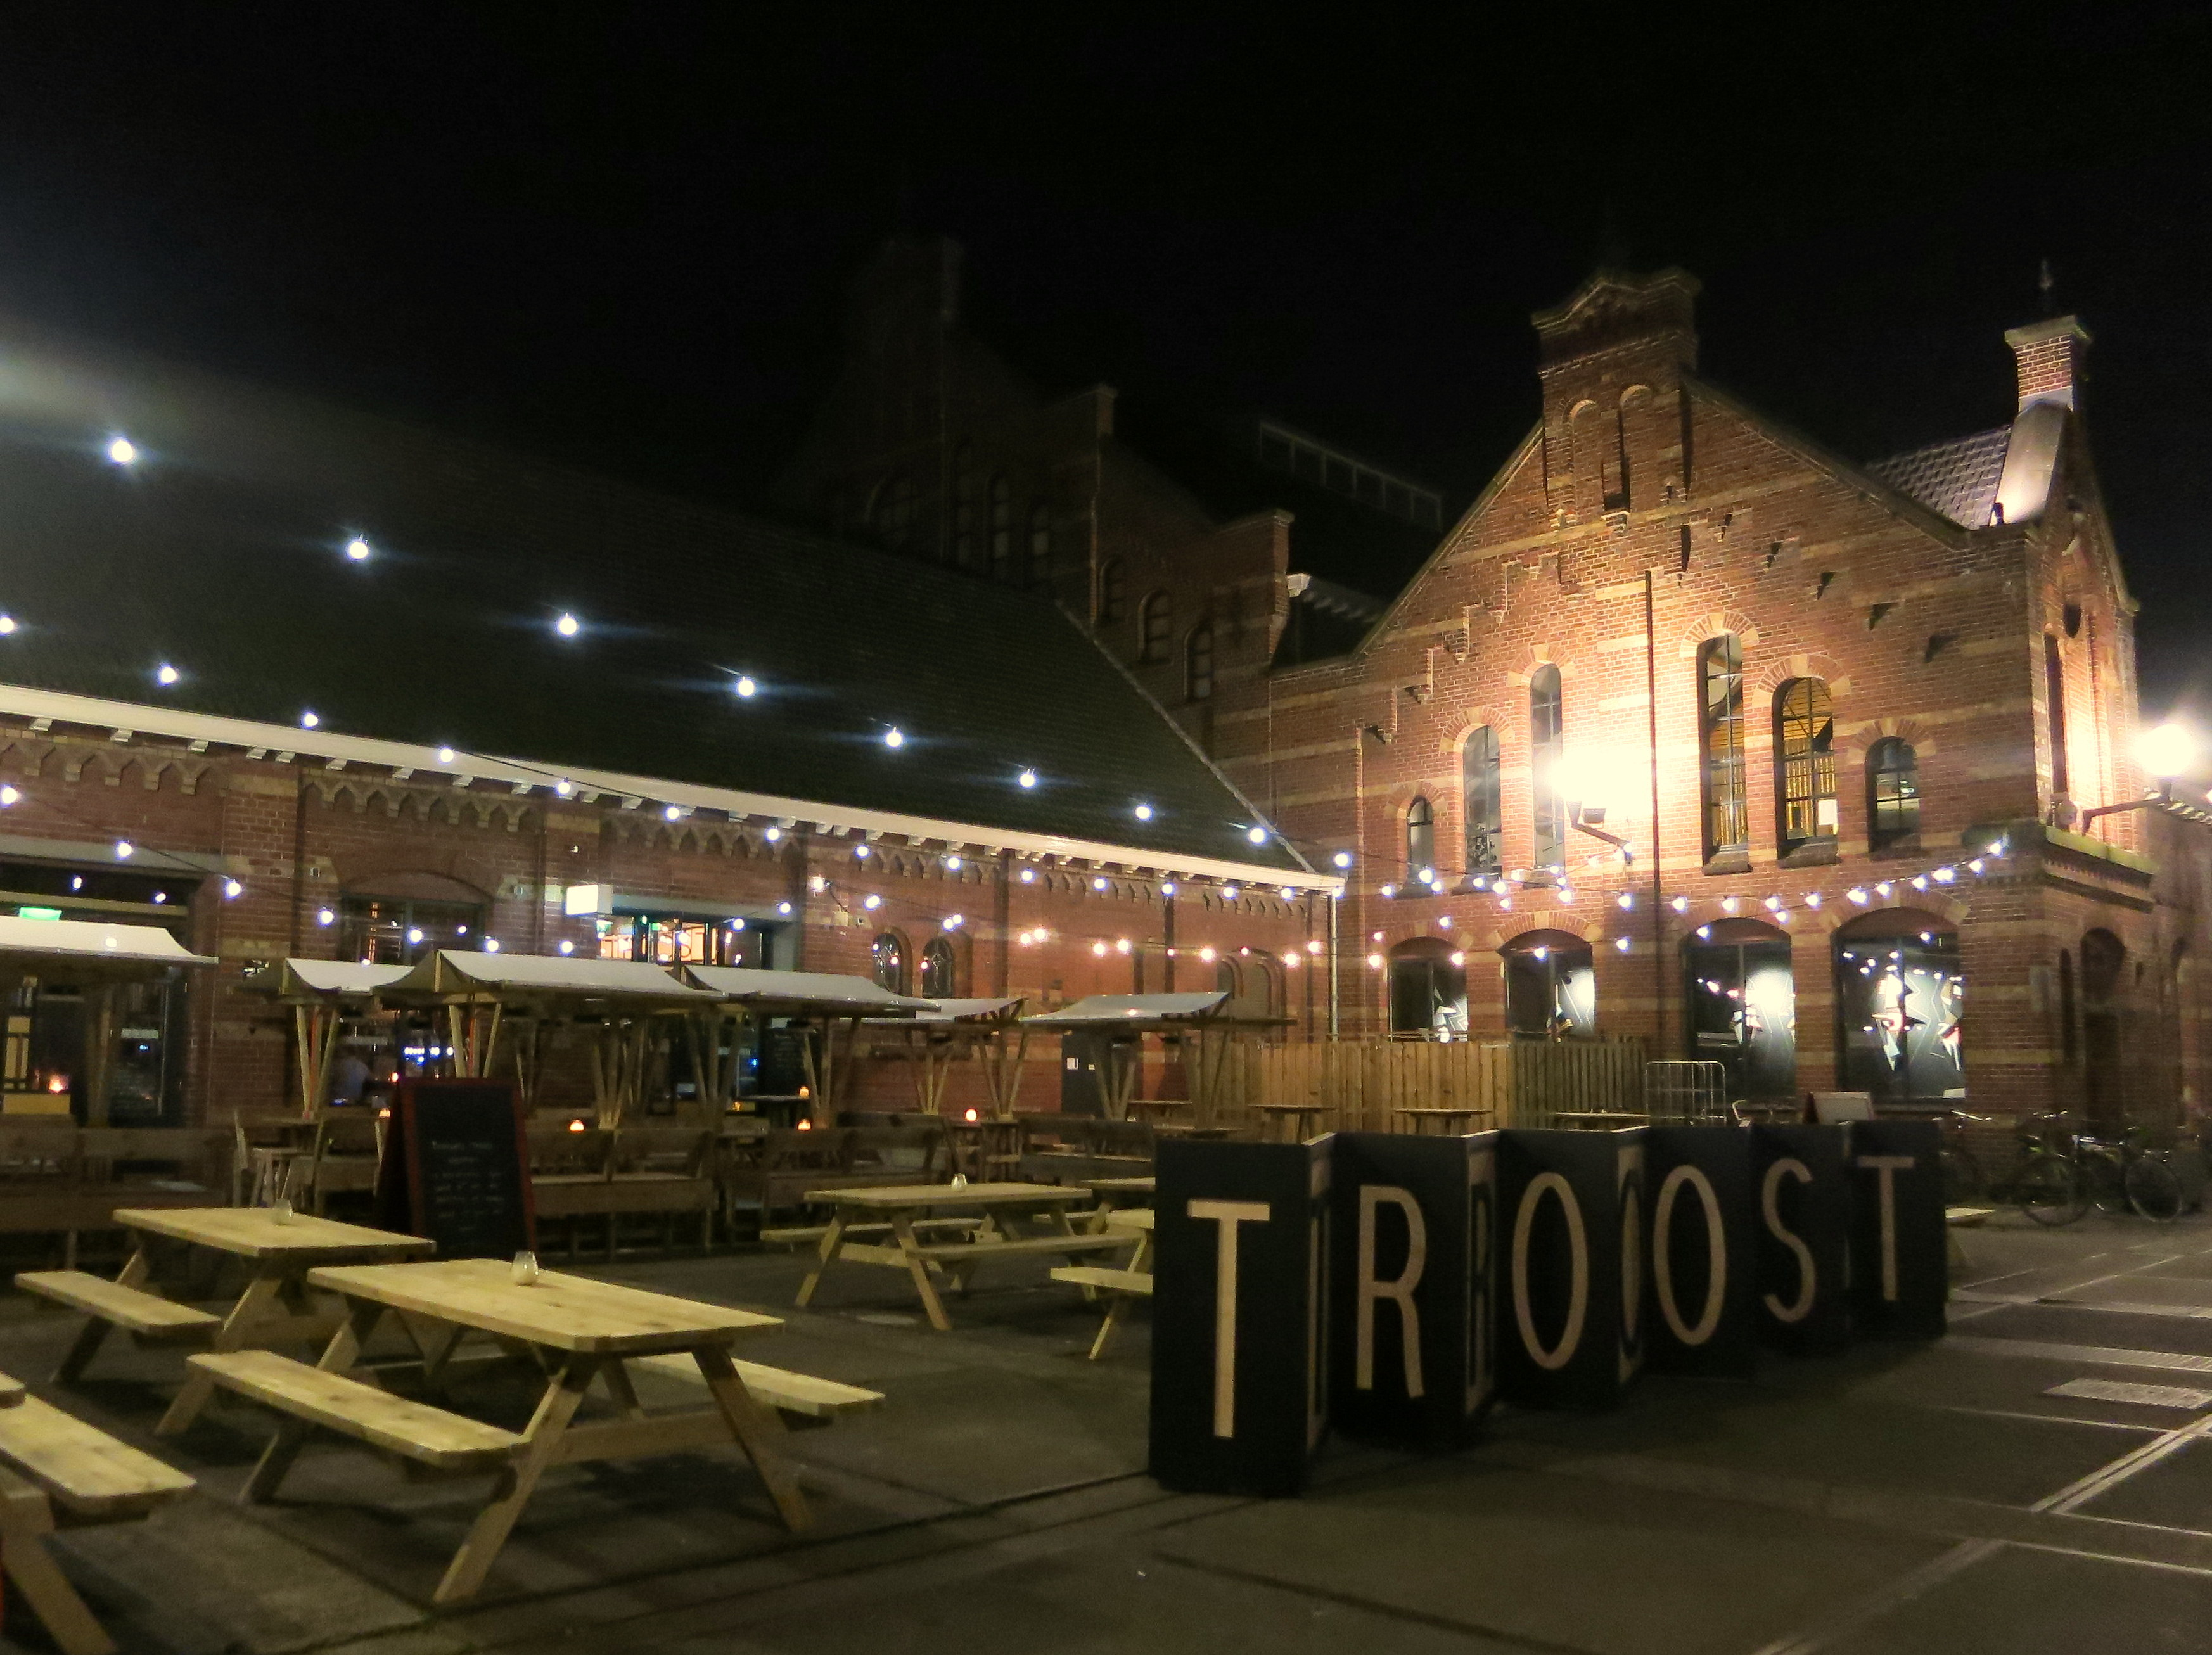 Thirsty for craft beer in Amsterdam? Here are 10 of our favorite local Amsterdam microbreweries! Brouwerij Troost awesomeamsterdam.com